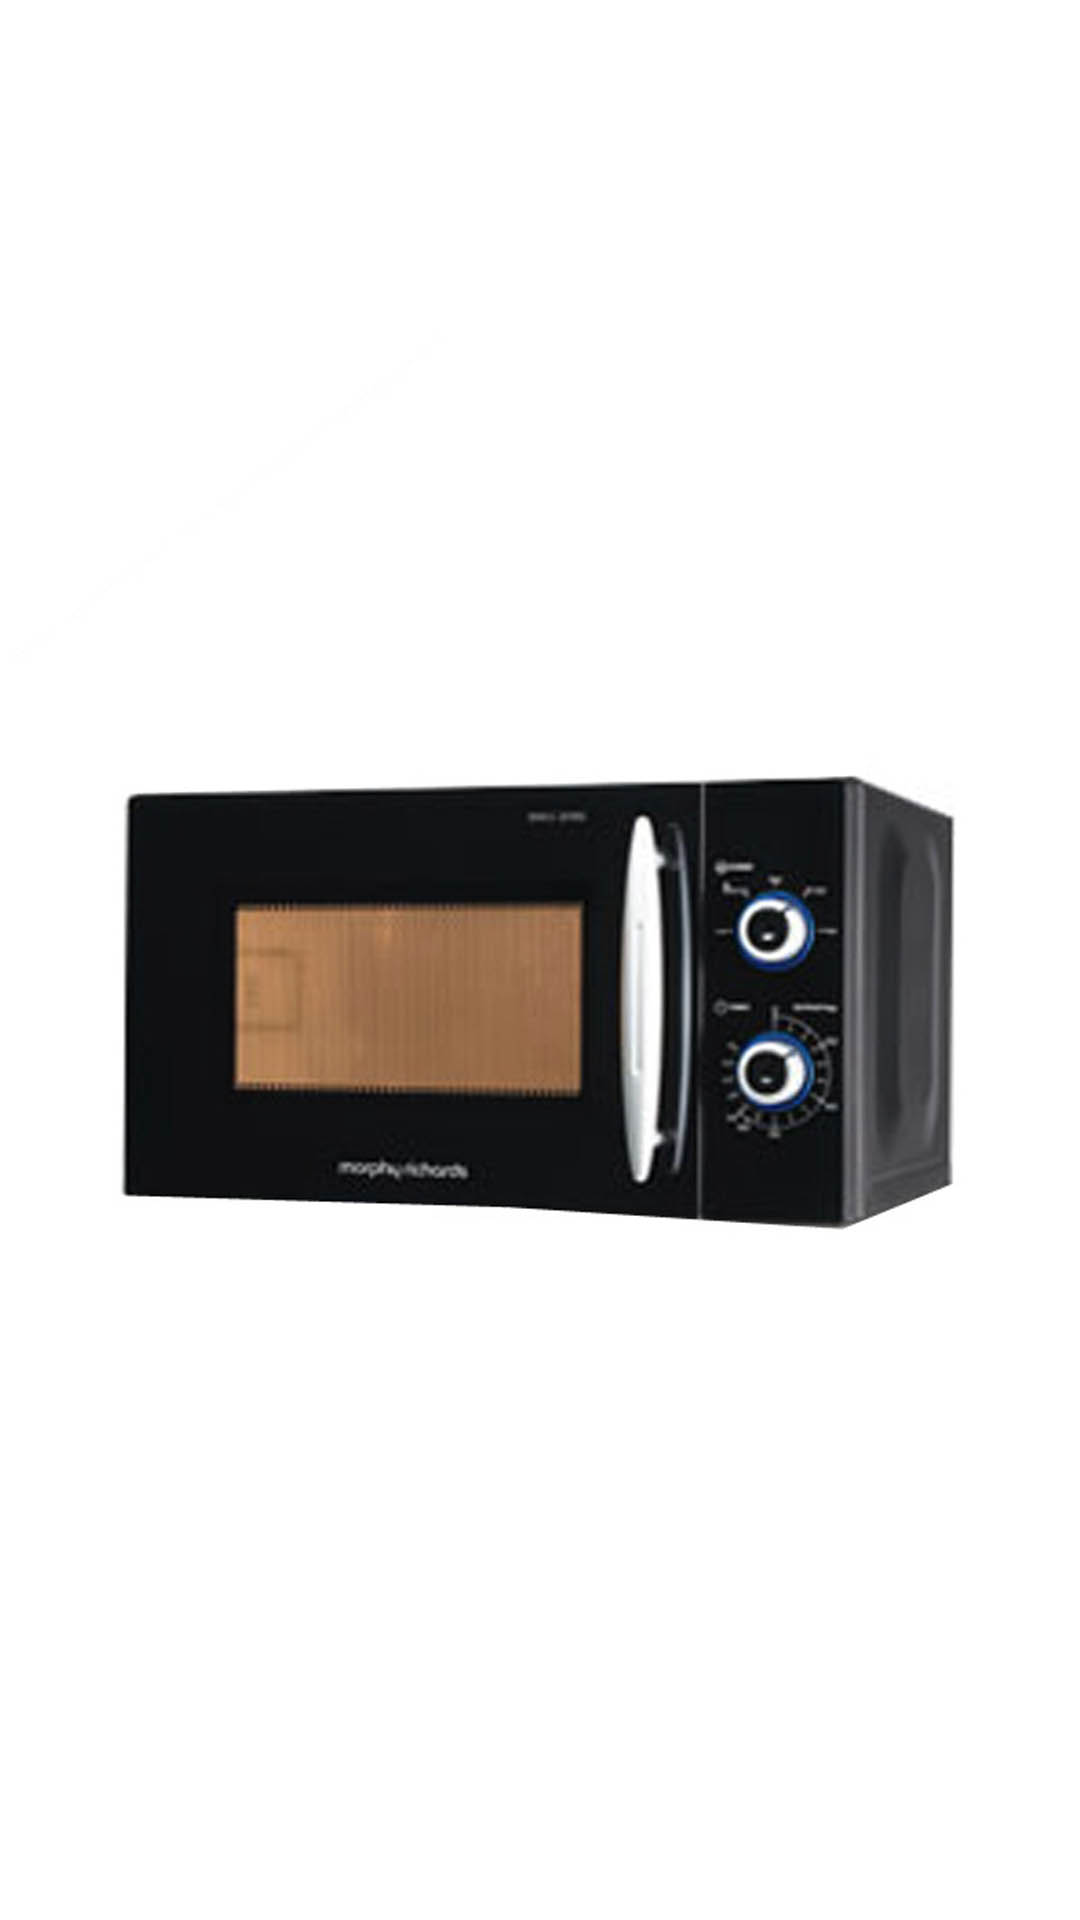 Morphy Richards MWO 20 MS 20 L Solo Oven (Black)